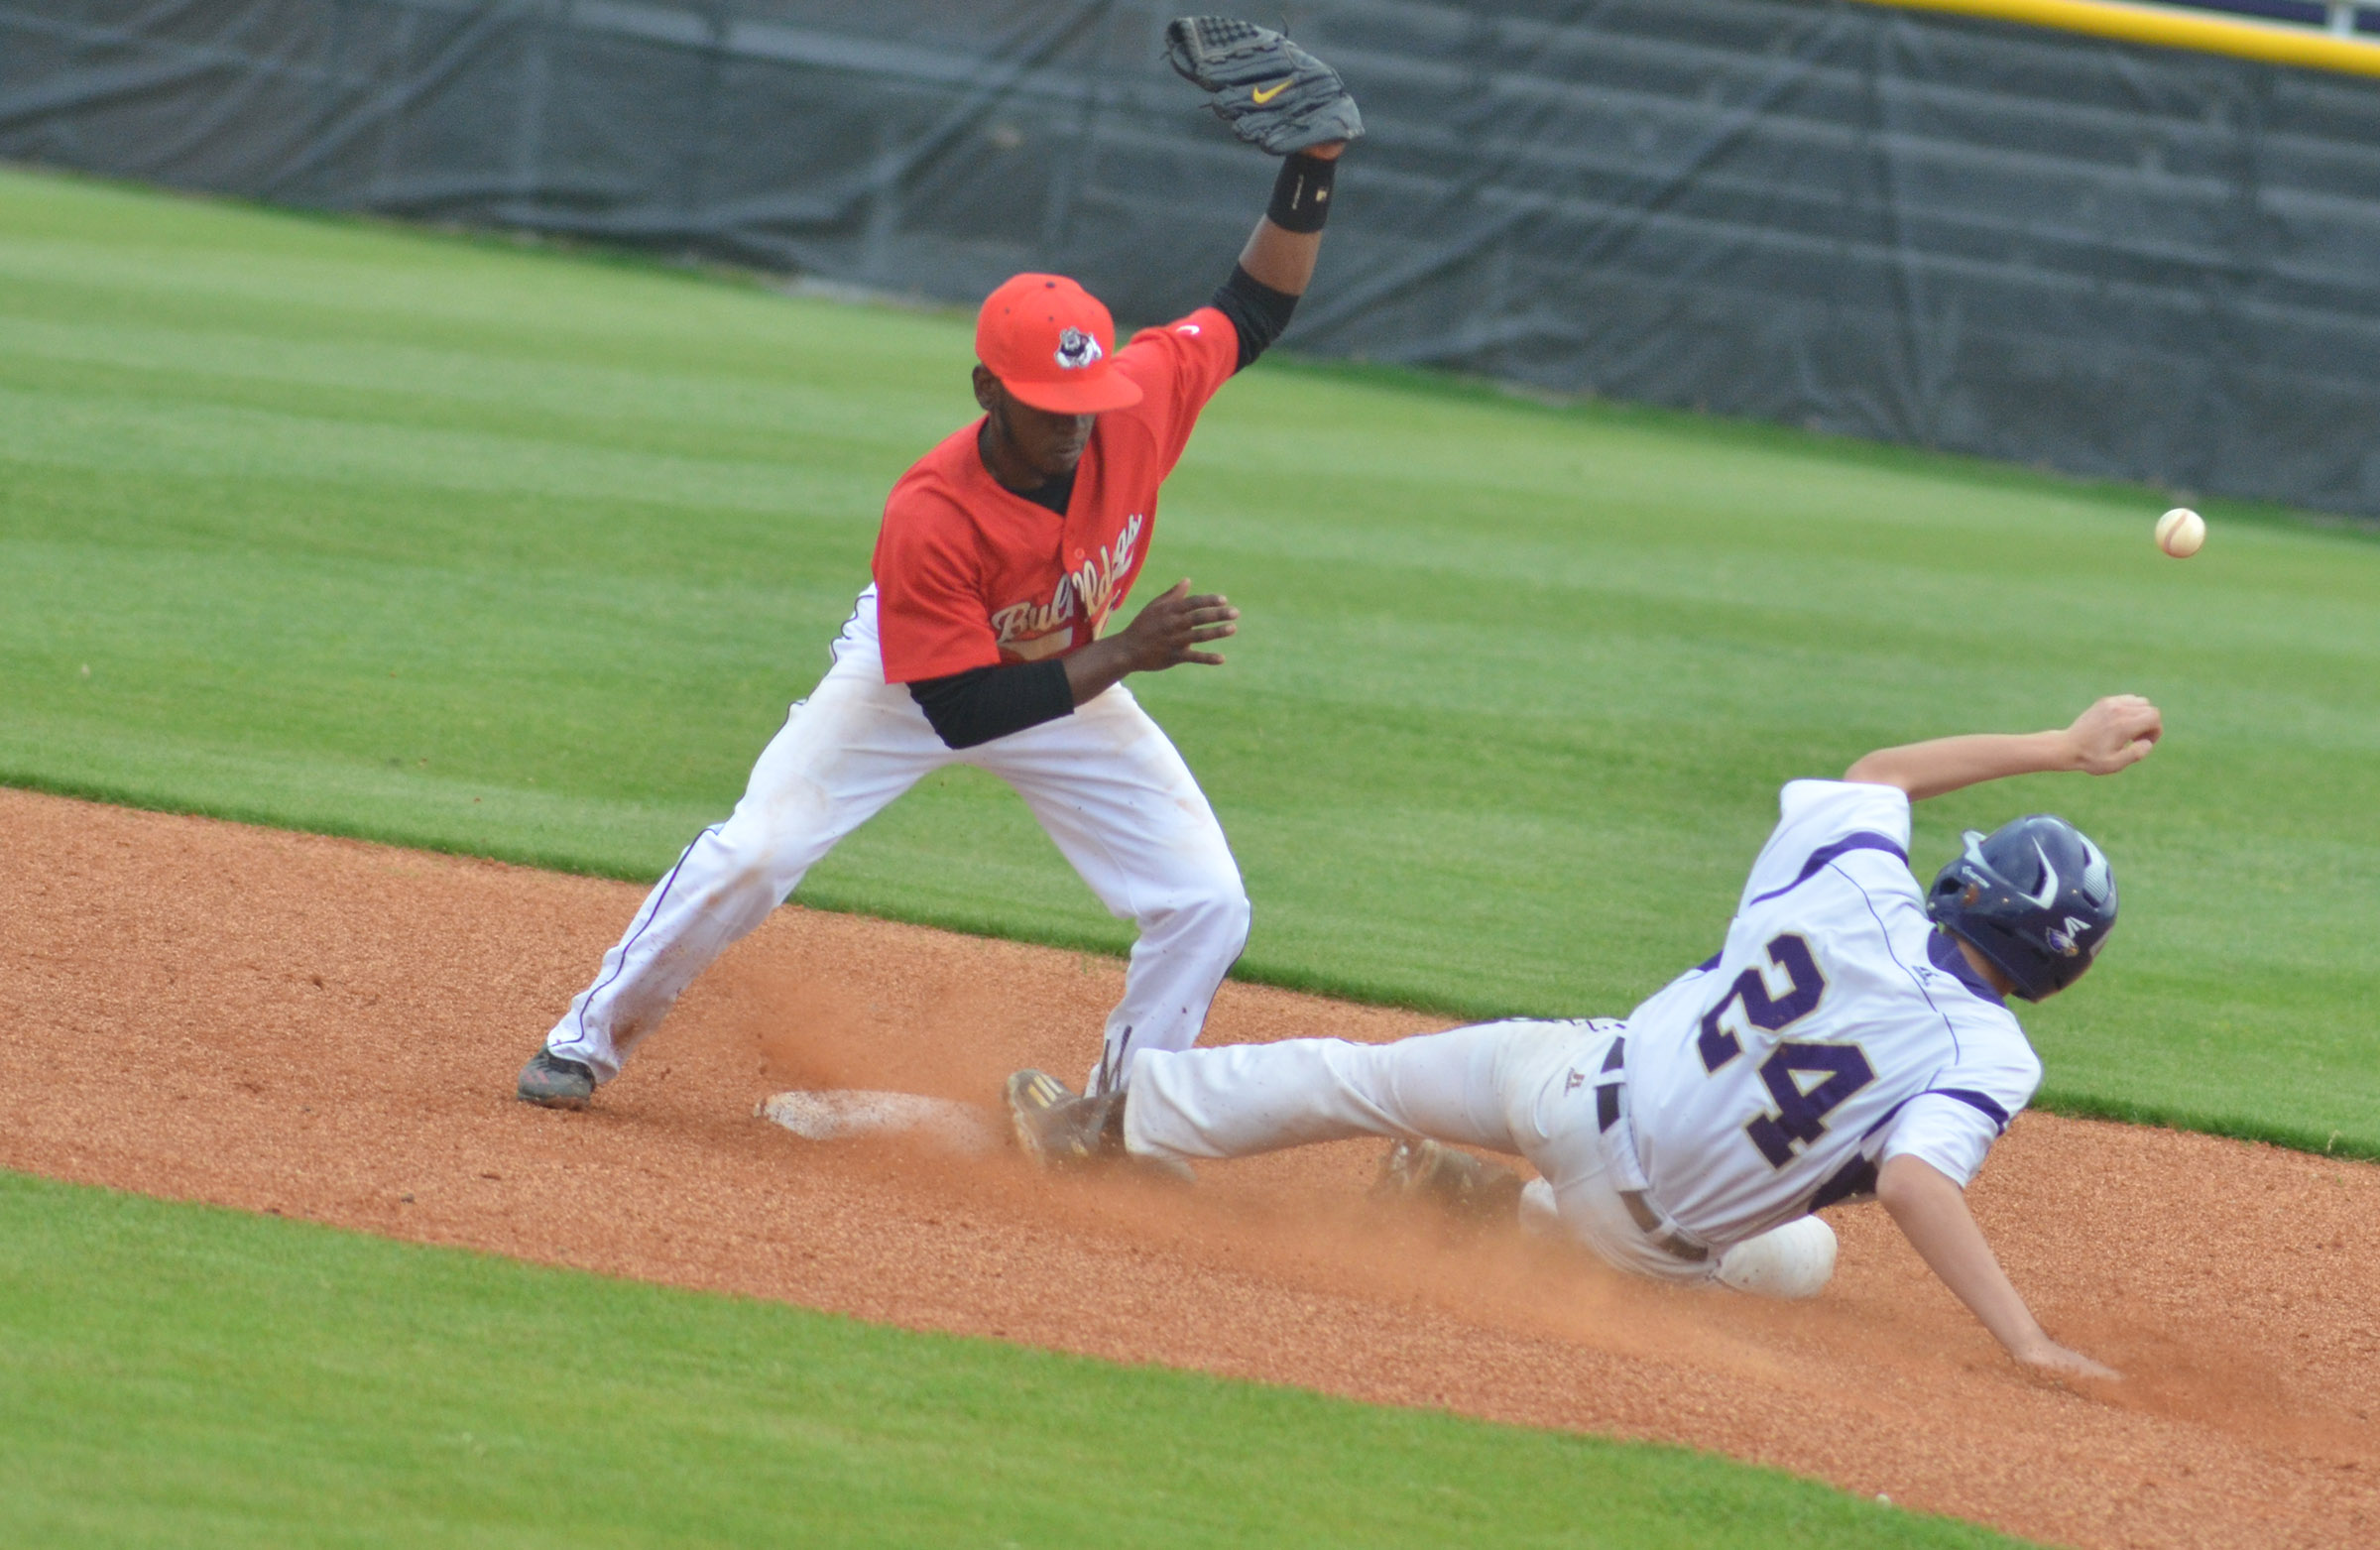 CHS freshman Brennon Wheeler is safe at second.